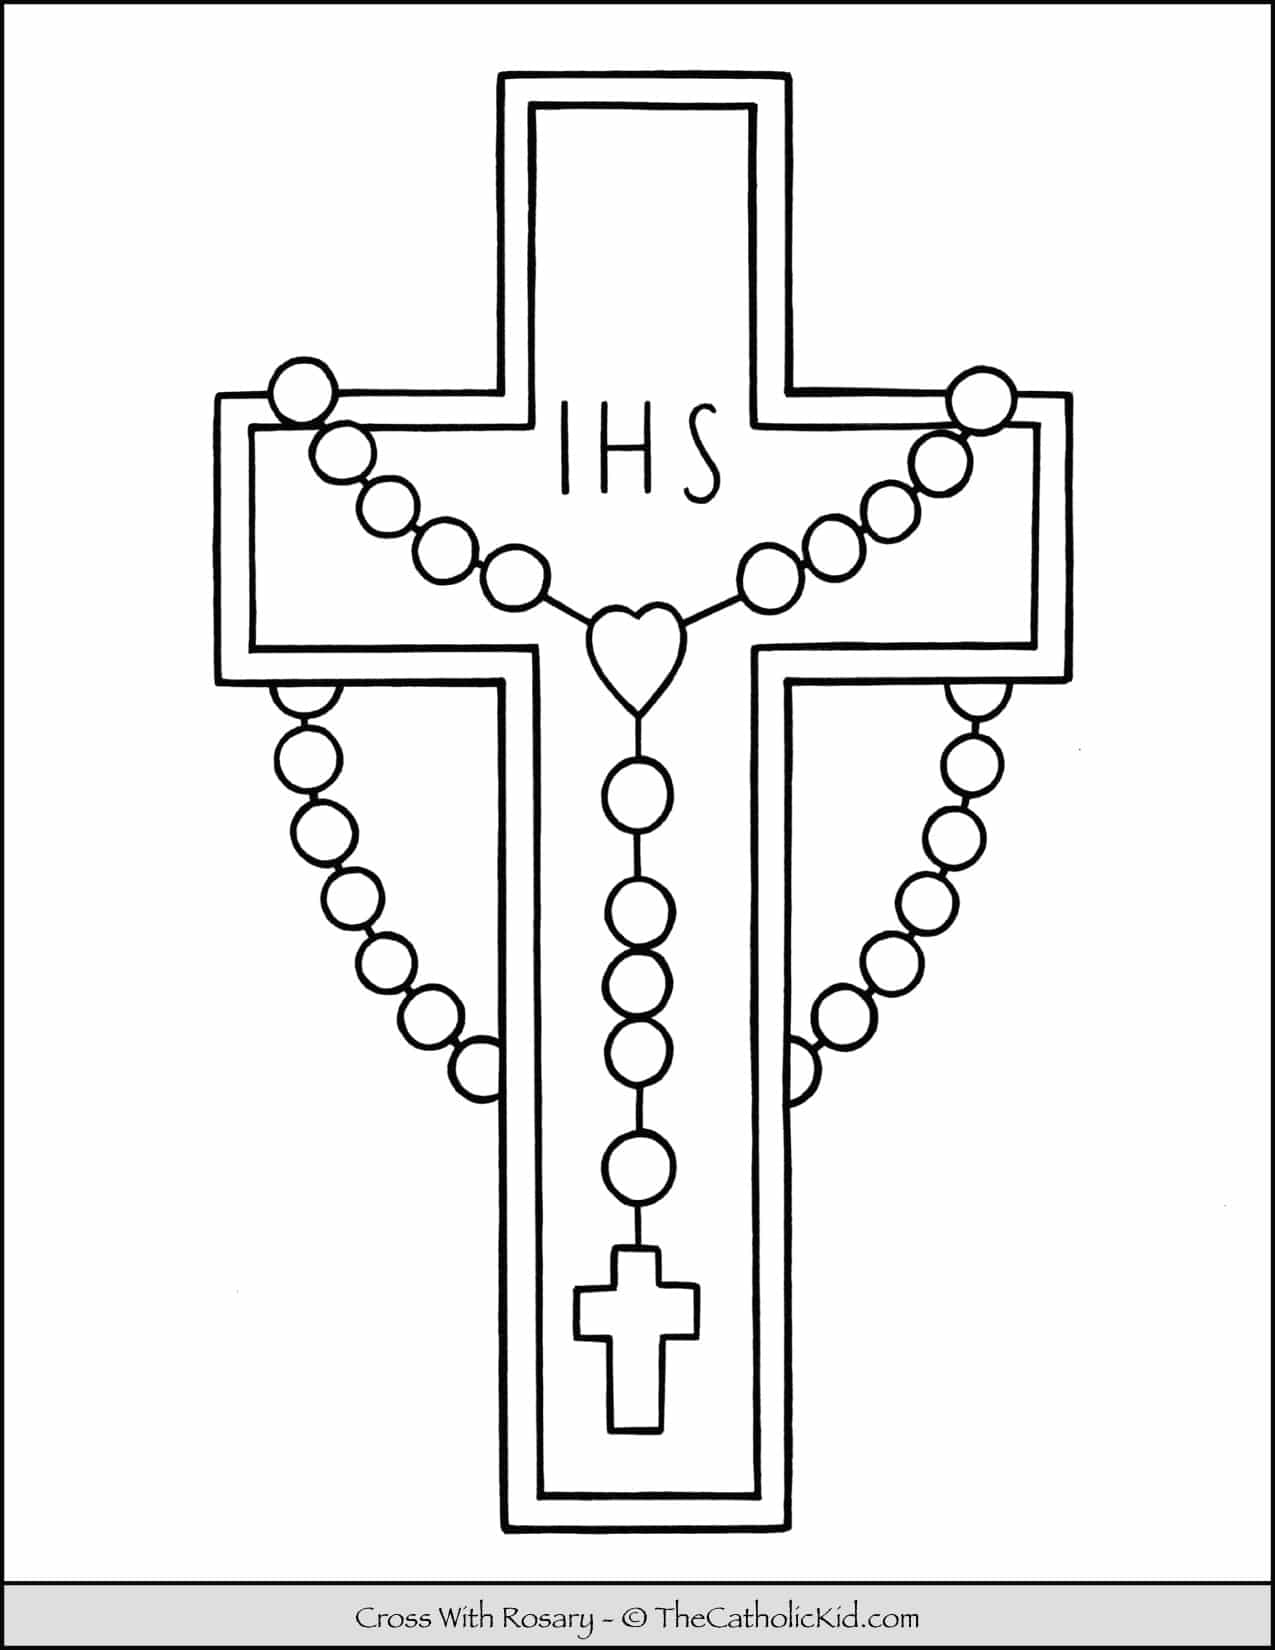 Cross With Rosary Coloring Page